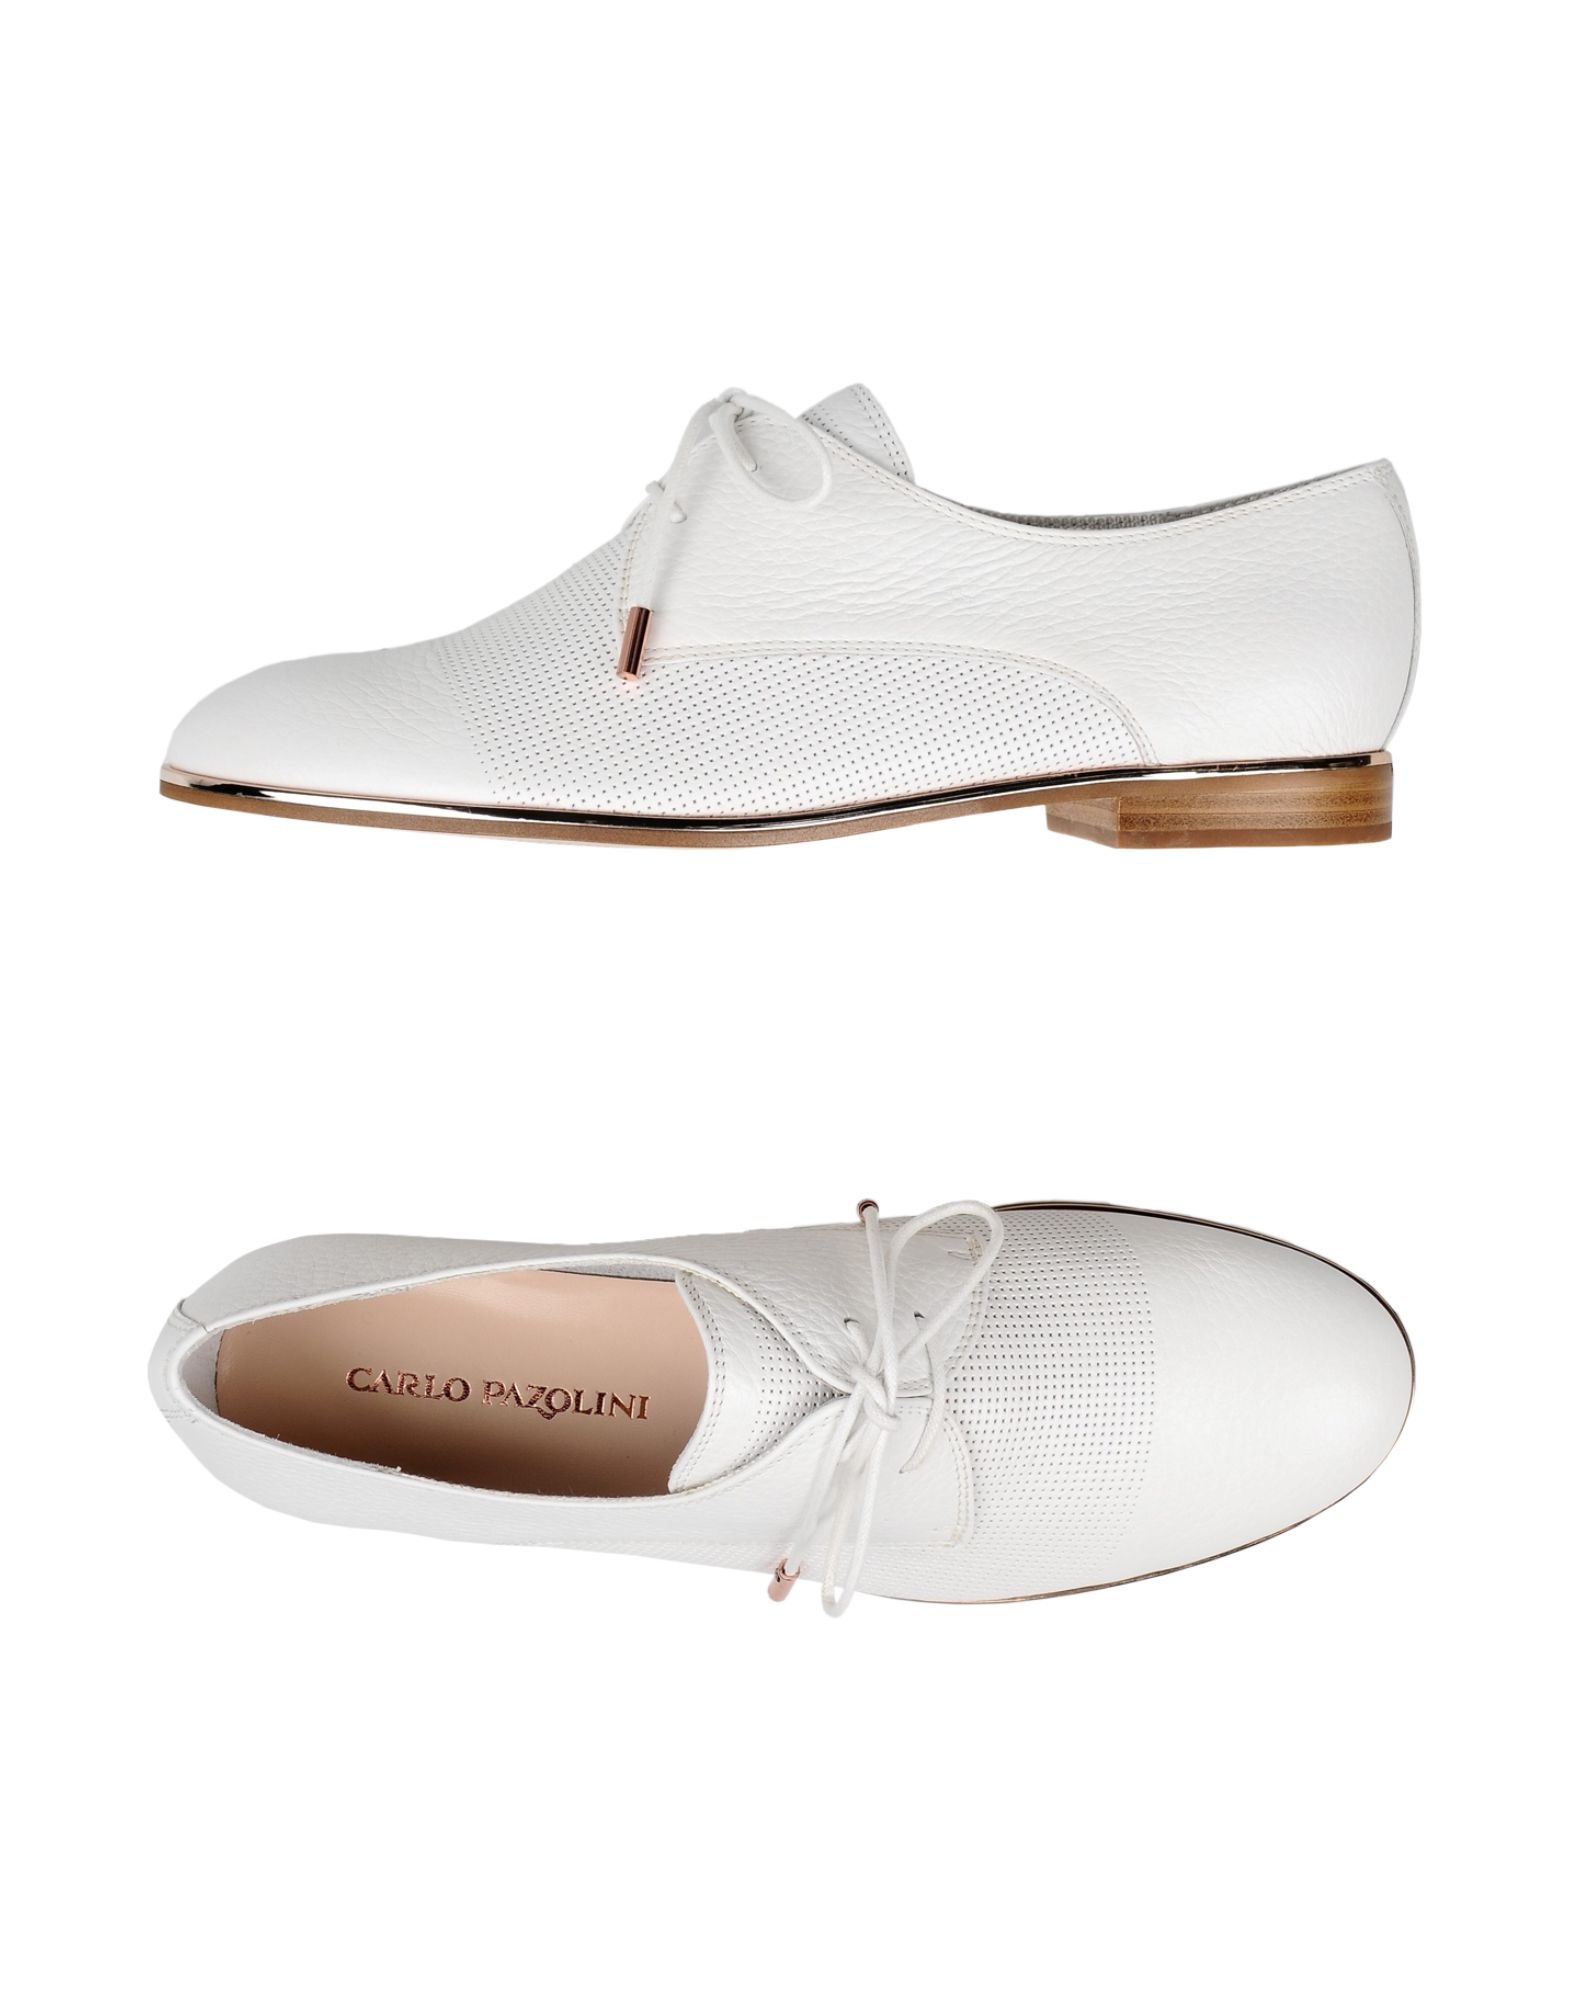 French Sole Shoes Australia